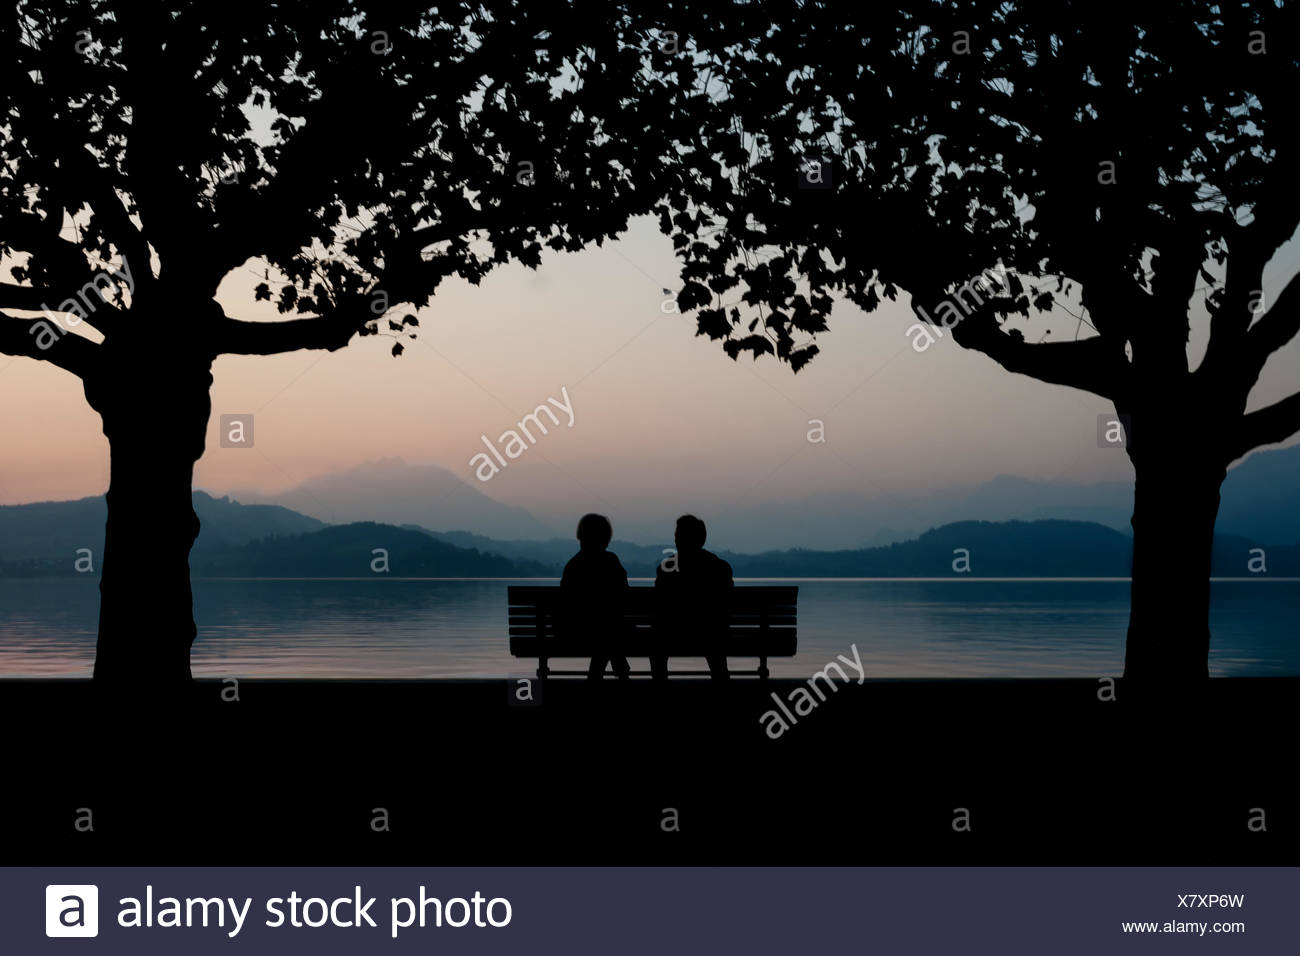 Silhouette Couple Sitting on Bench par Calm lac au crépuscule Photo Stock